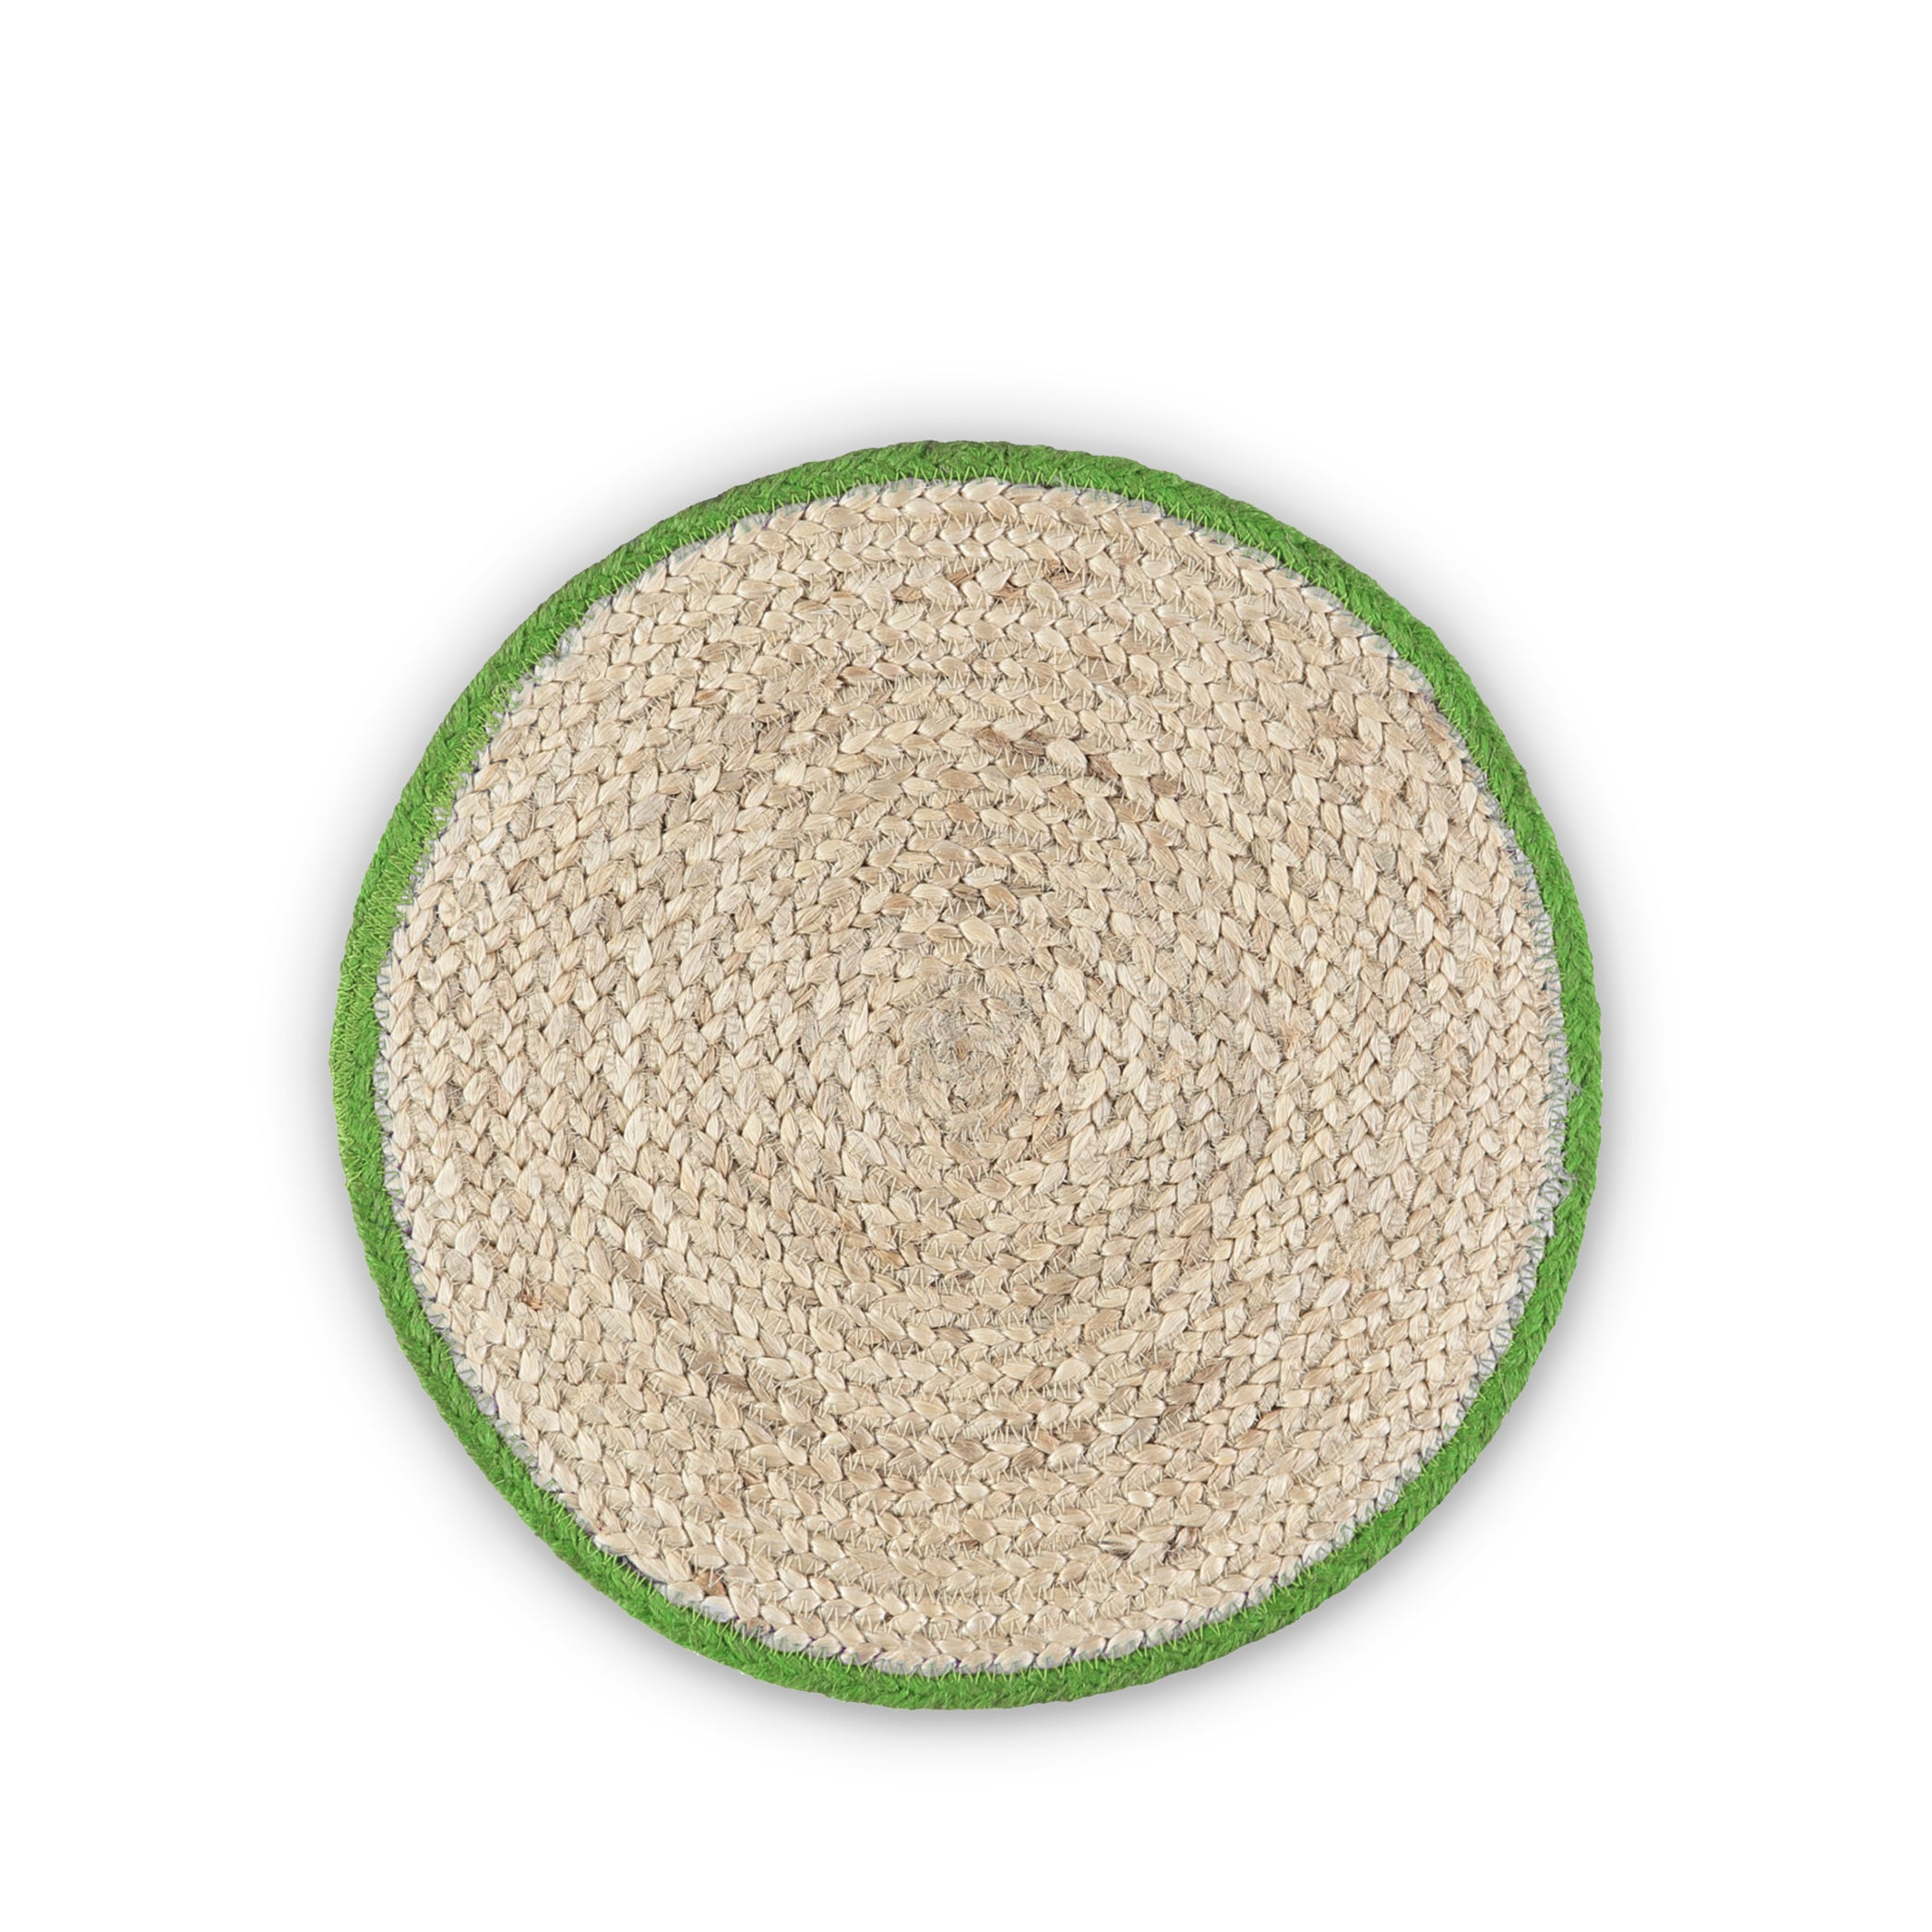 Jute Placemats with Green Border in Basket, Set of Six